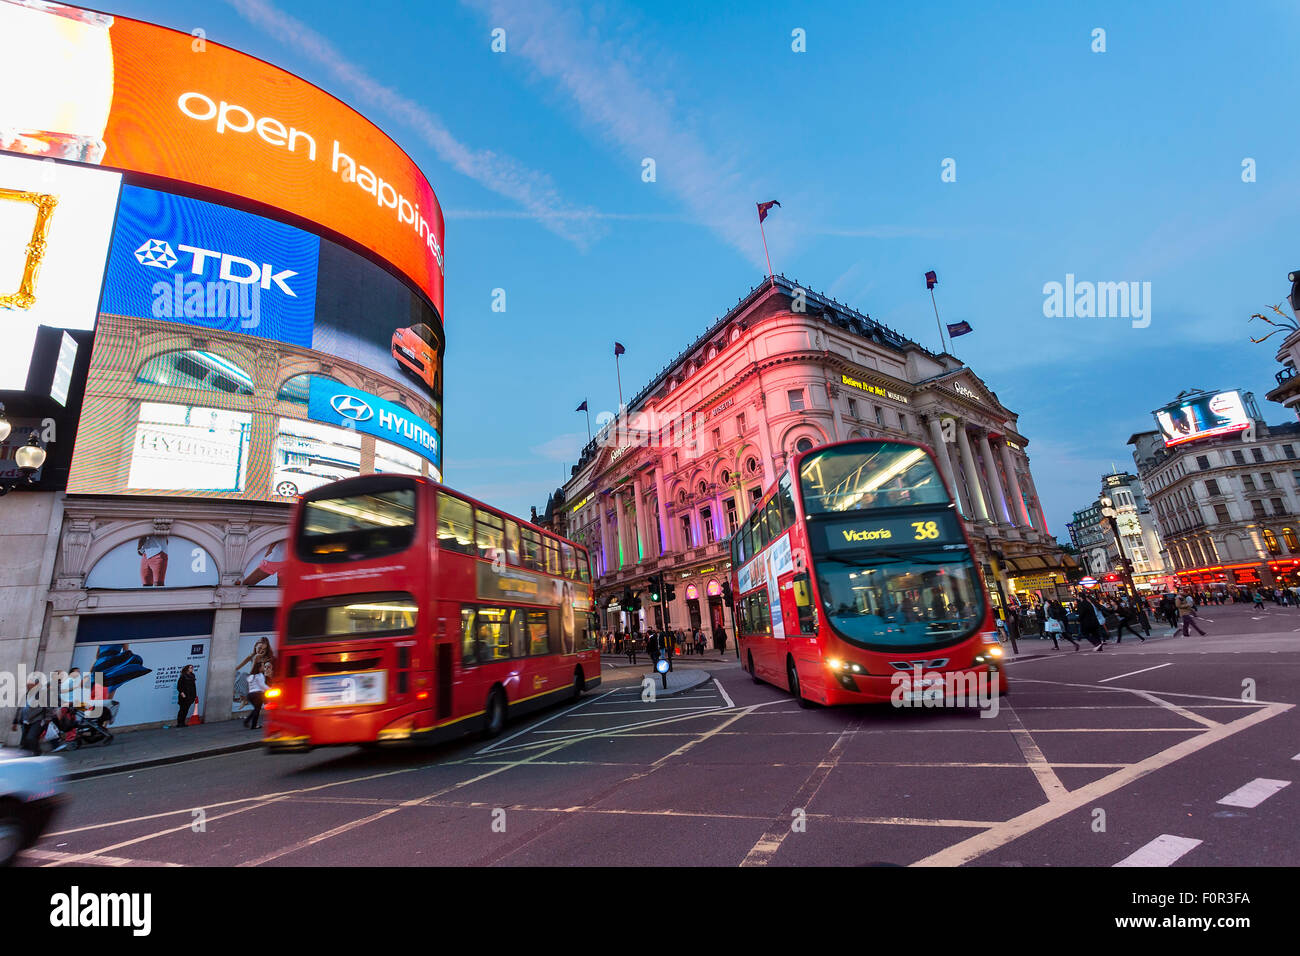 London, Traffic on Piccadilly Circus - Stock Image